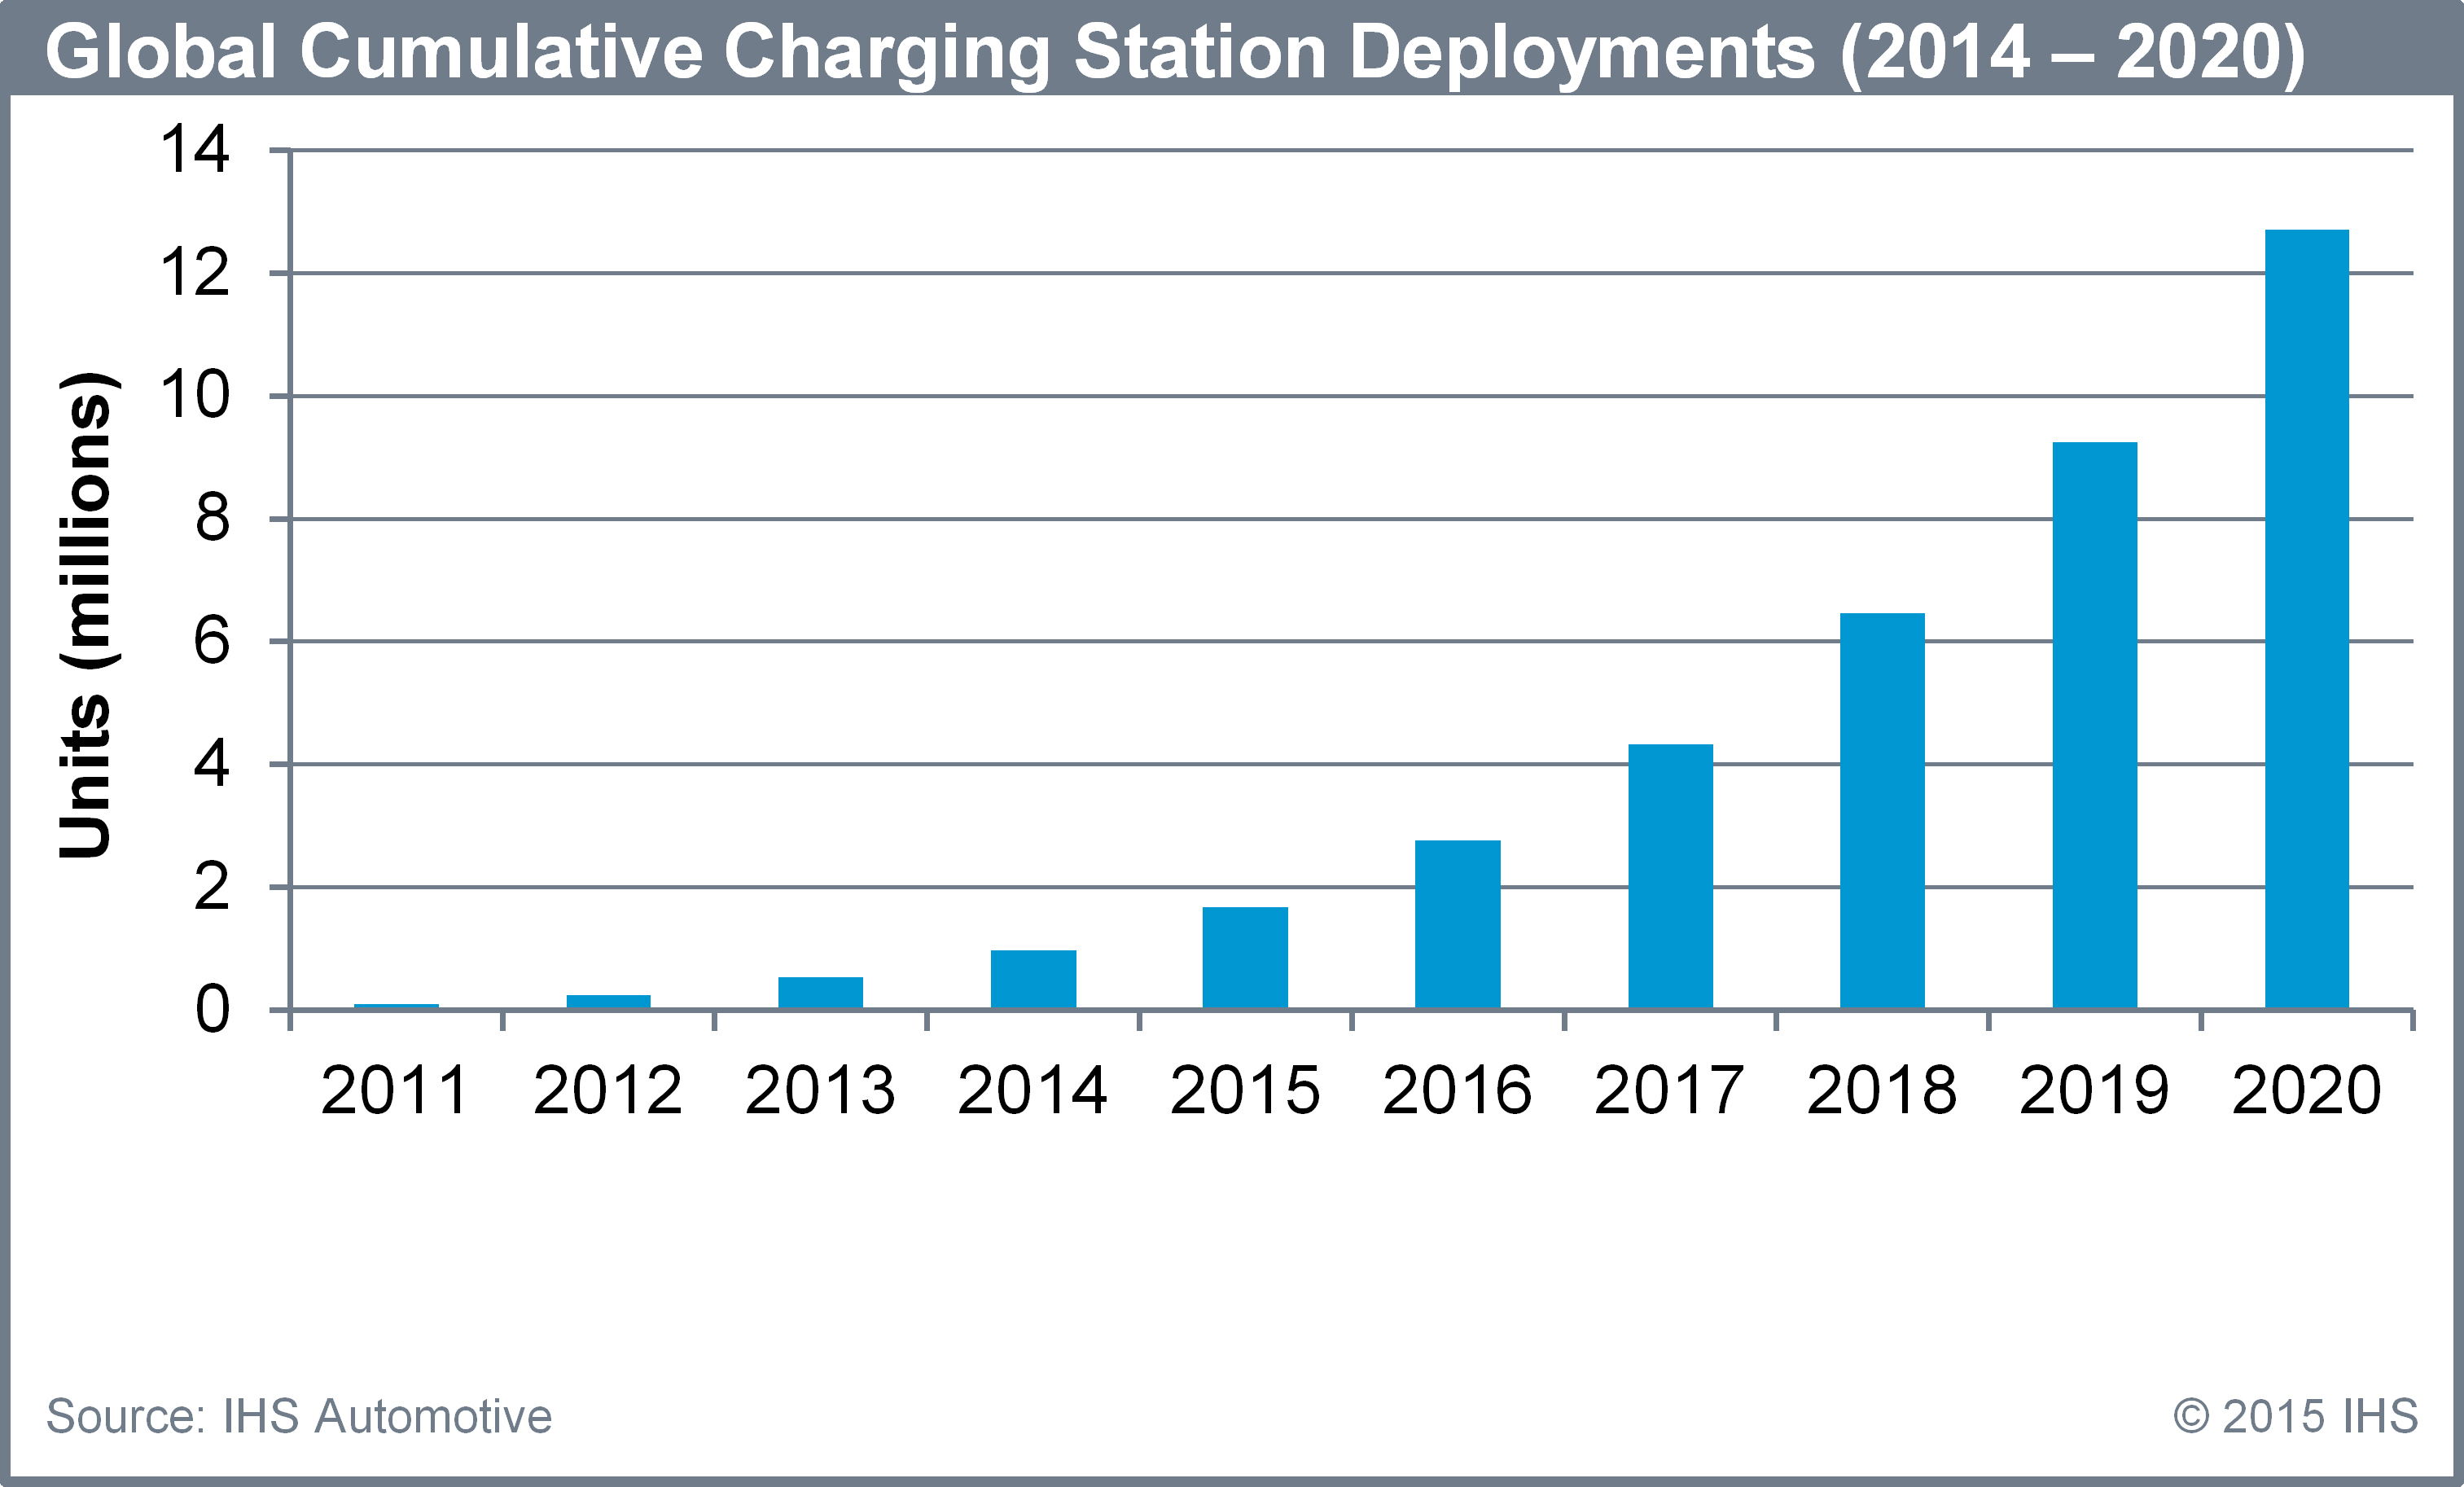 Wiring Diagram Electrical Car Charging Stations 47 2014 Charger Global Cumulative 2020 Ev To Skyrocket By Ihs Report Says Circuit